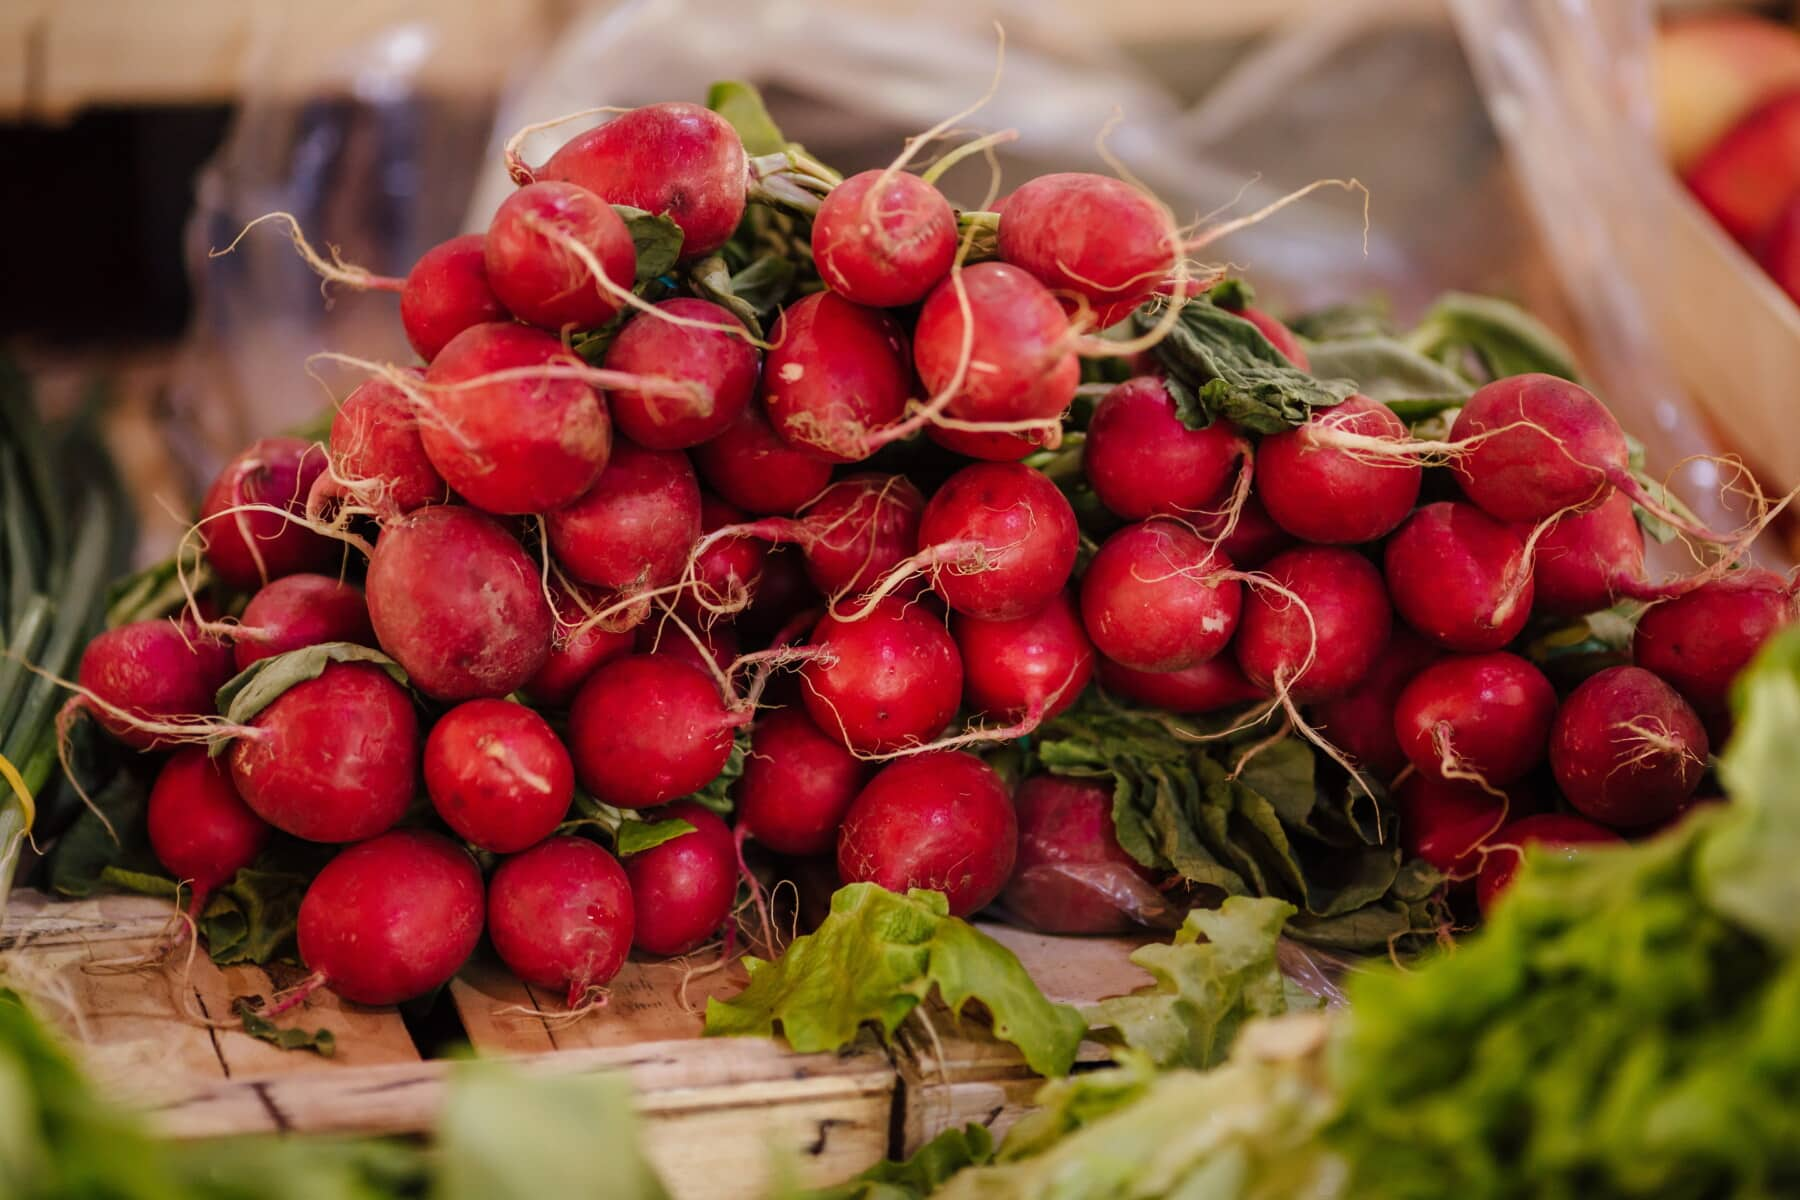 red, radish, shopping, vegetables, marketplace, agriculture, products, herb, vegetable, food